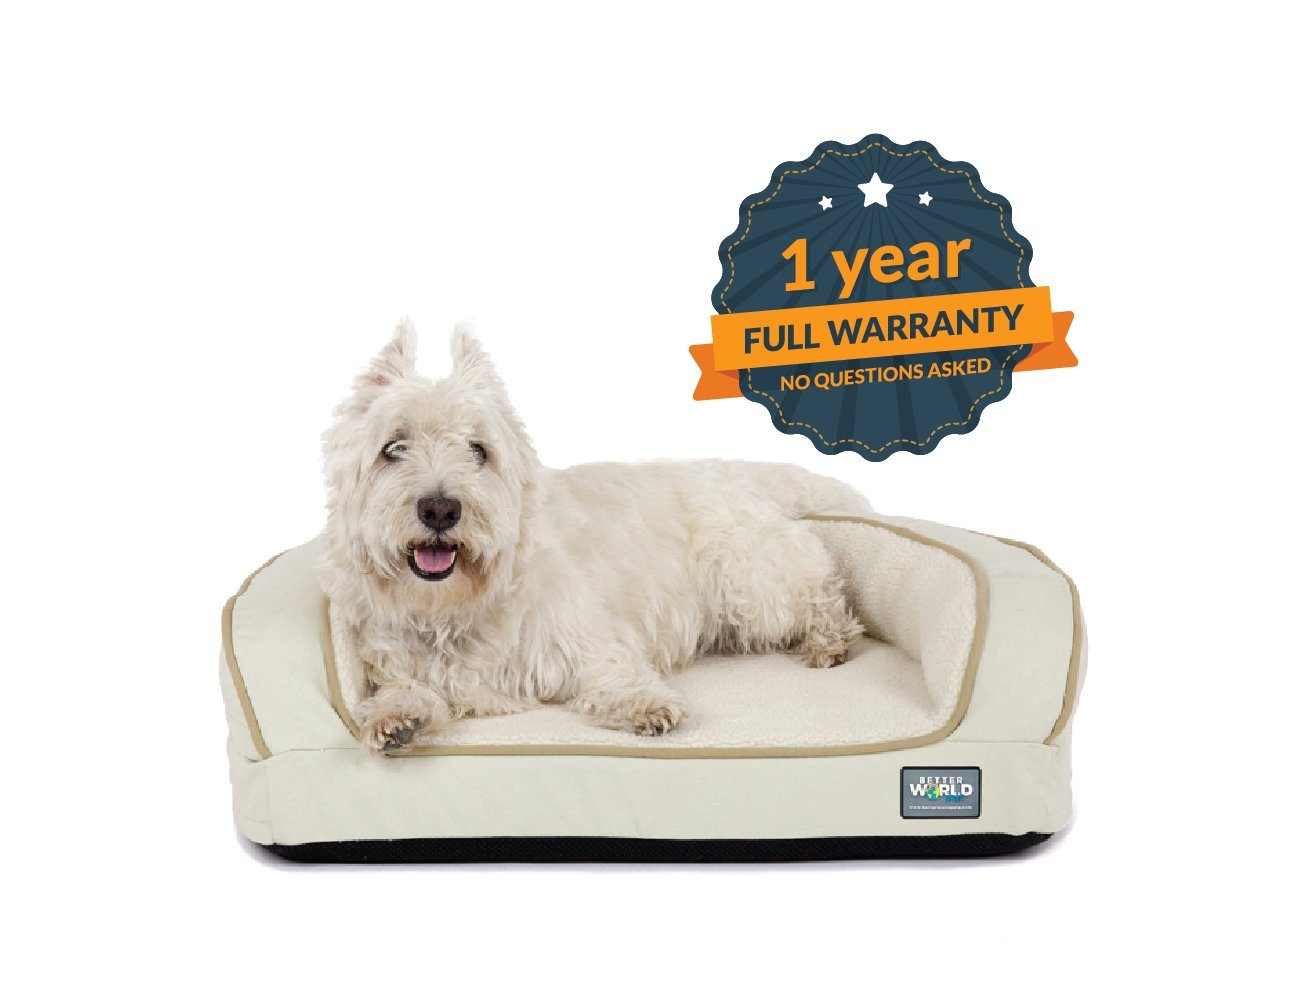 Better World Pets Super Comfort Bolster Dog Bed :: Waterproof Memory Foam Pet Bed with Durable Canvas Cover, Extra Plush Fleece + Foam Bolsters :: 4 Inch Thick, Washable, Small, White Sand by by Better World Pets (Image #7)